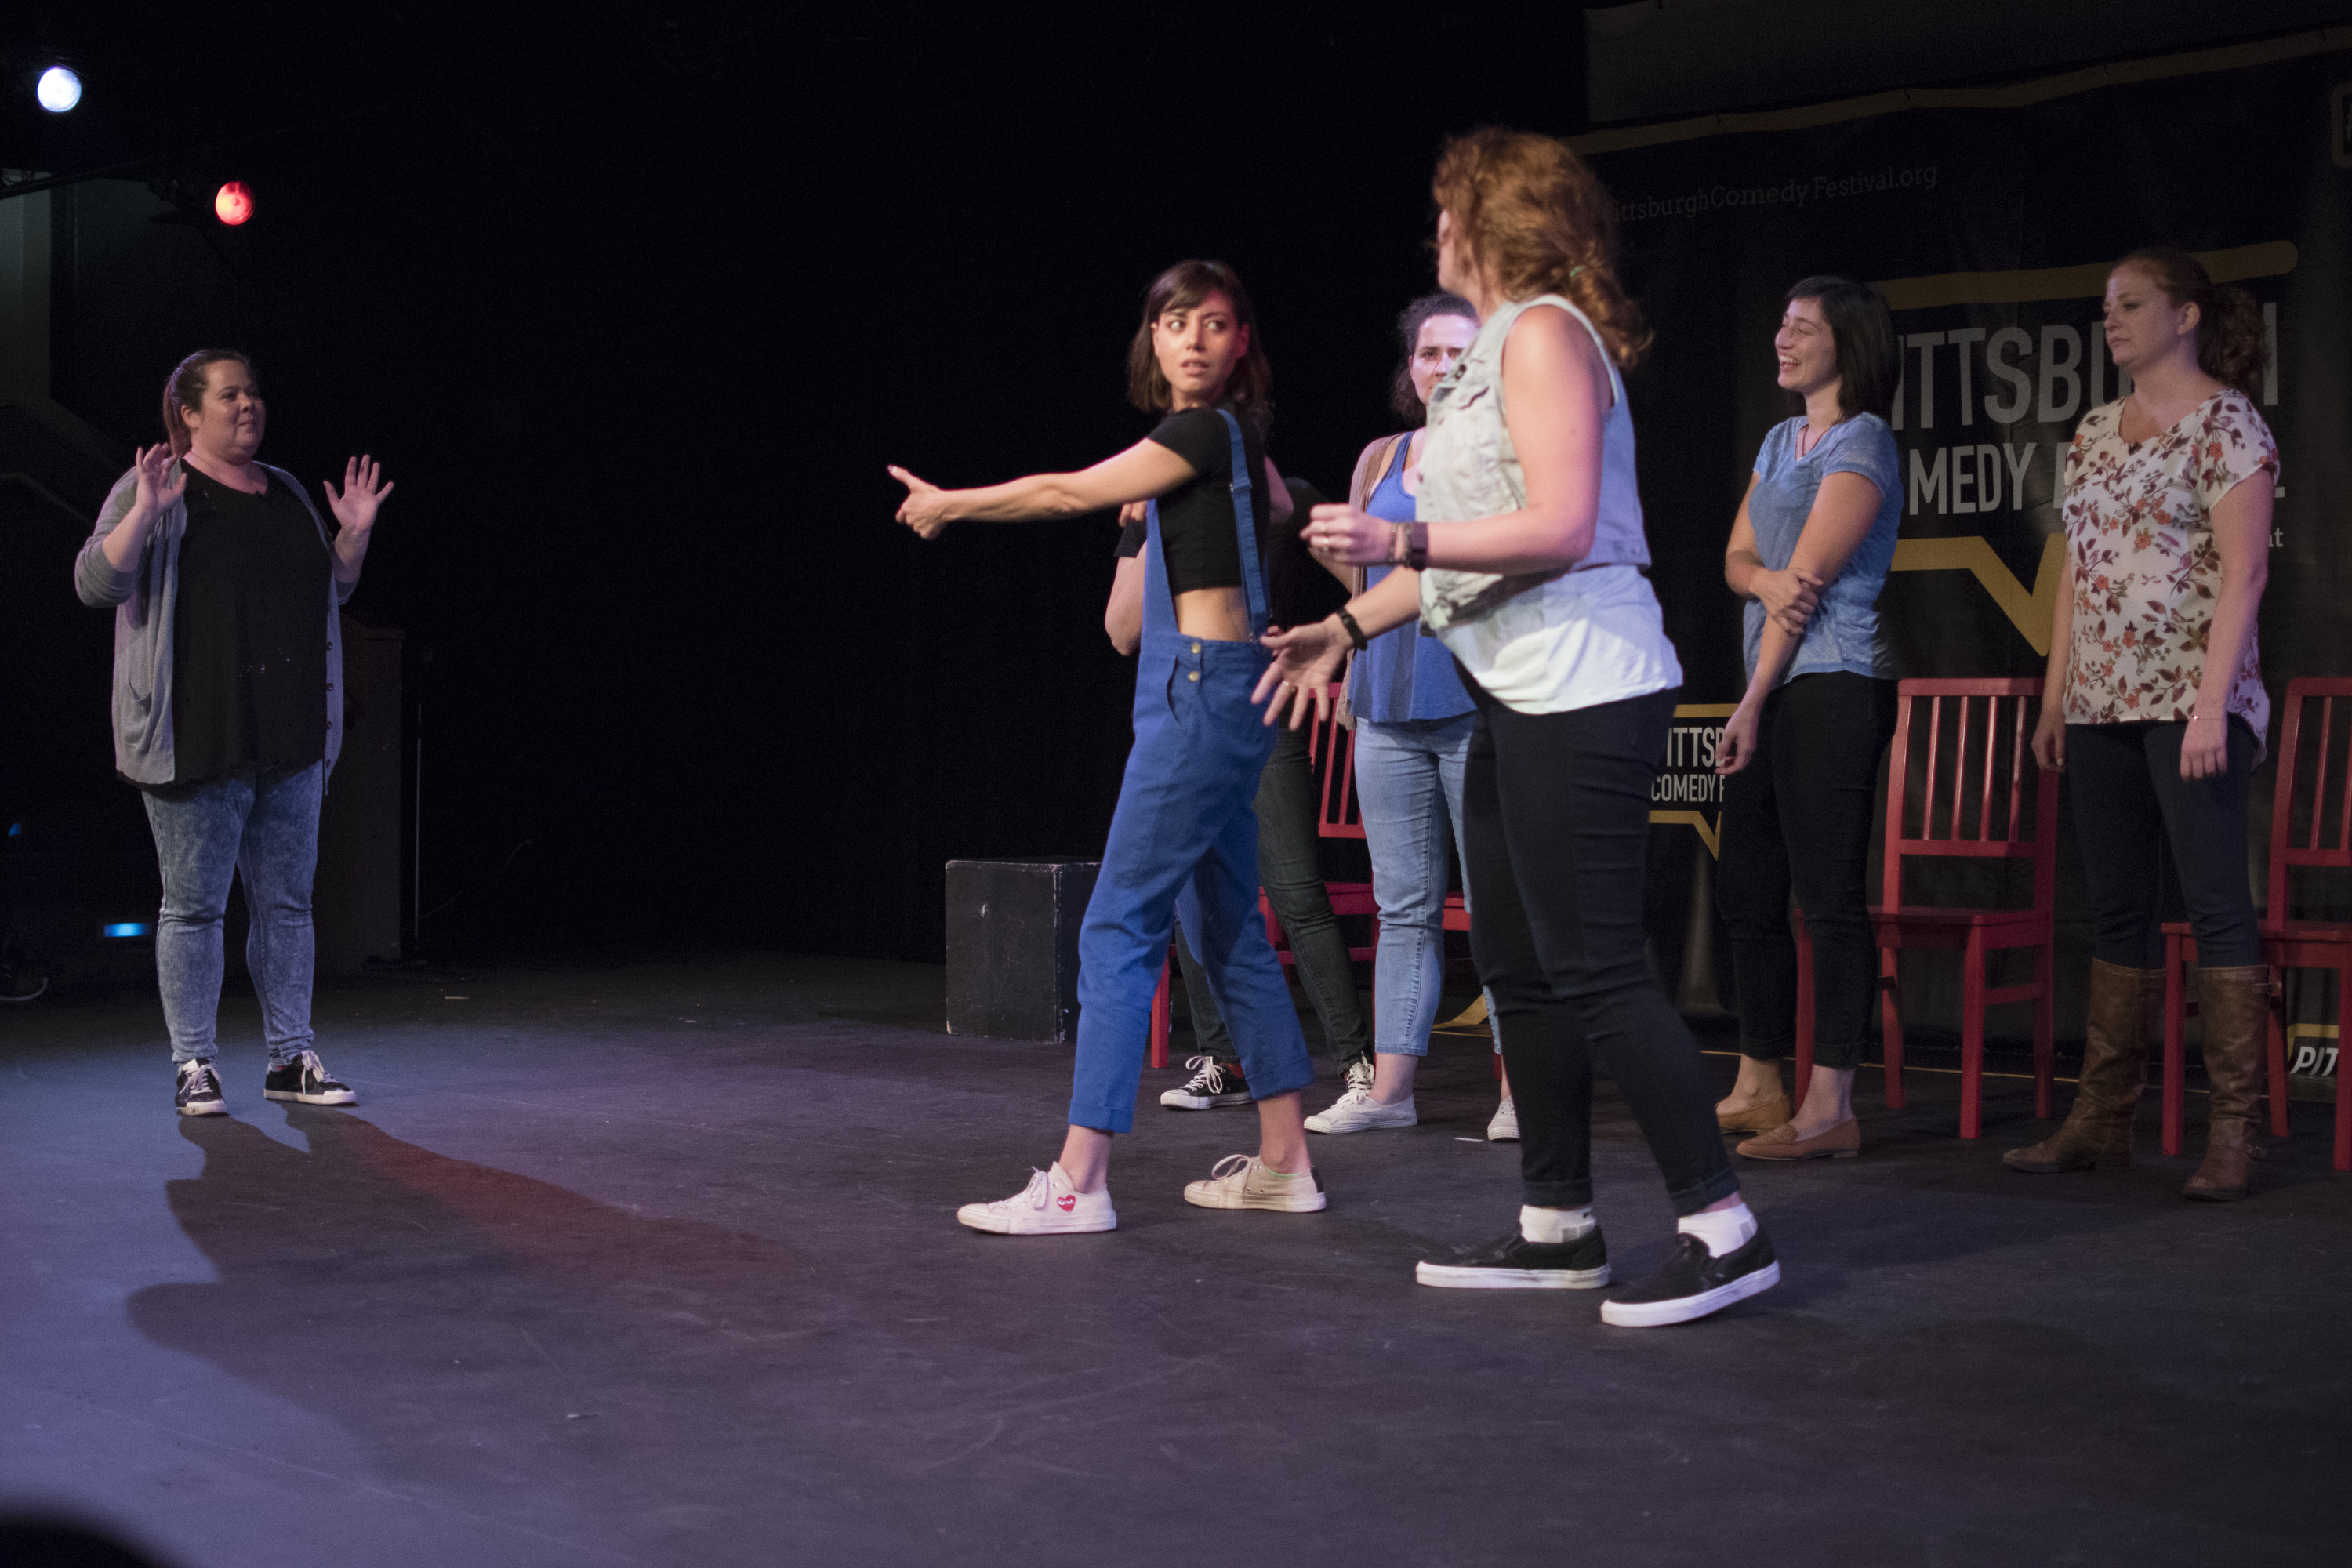 The improv group Bombardo (with Aubrey Plaza) headlined the Pittsburgh Comedy Festival.